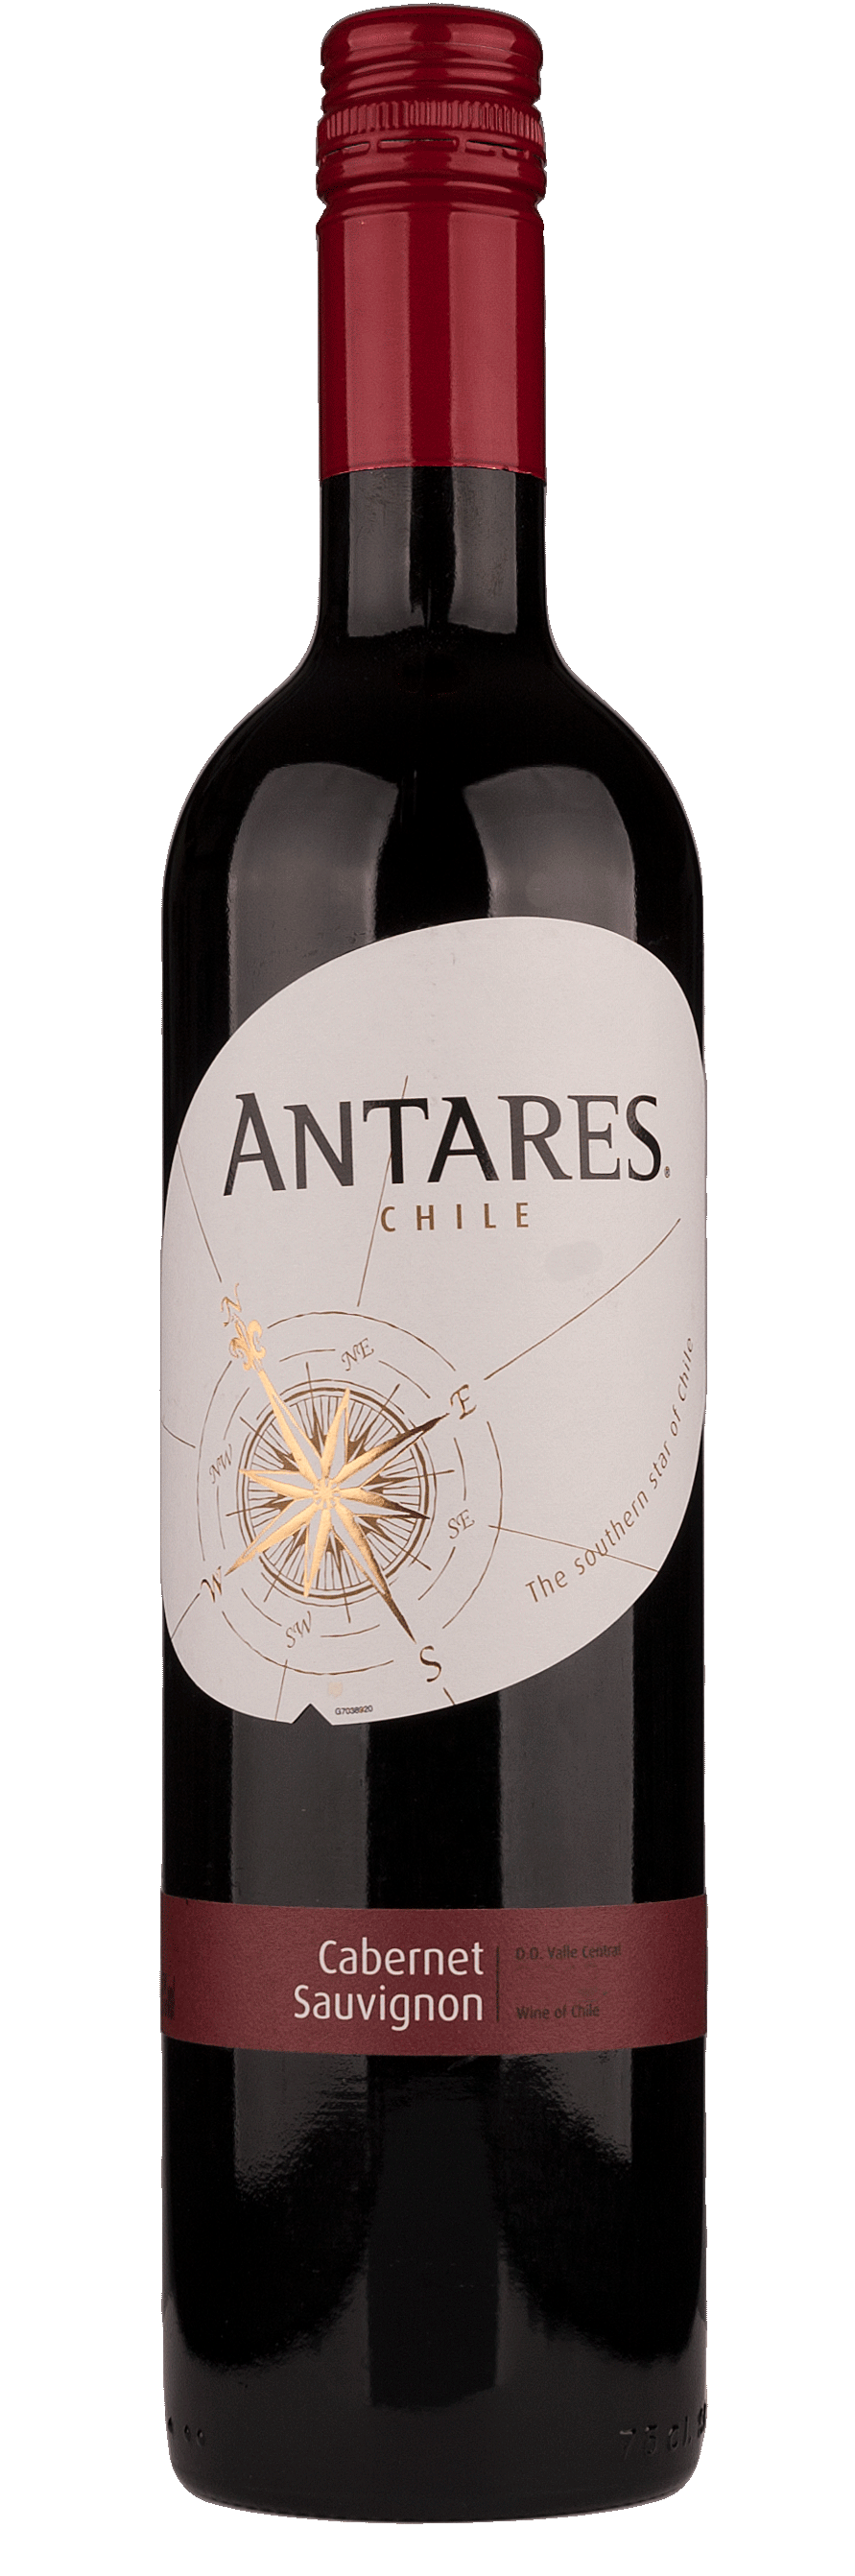 Santa Carolina Antares Cabernet Sauvignon Central Valley 75cl